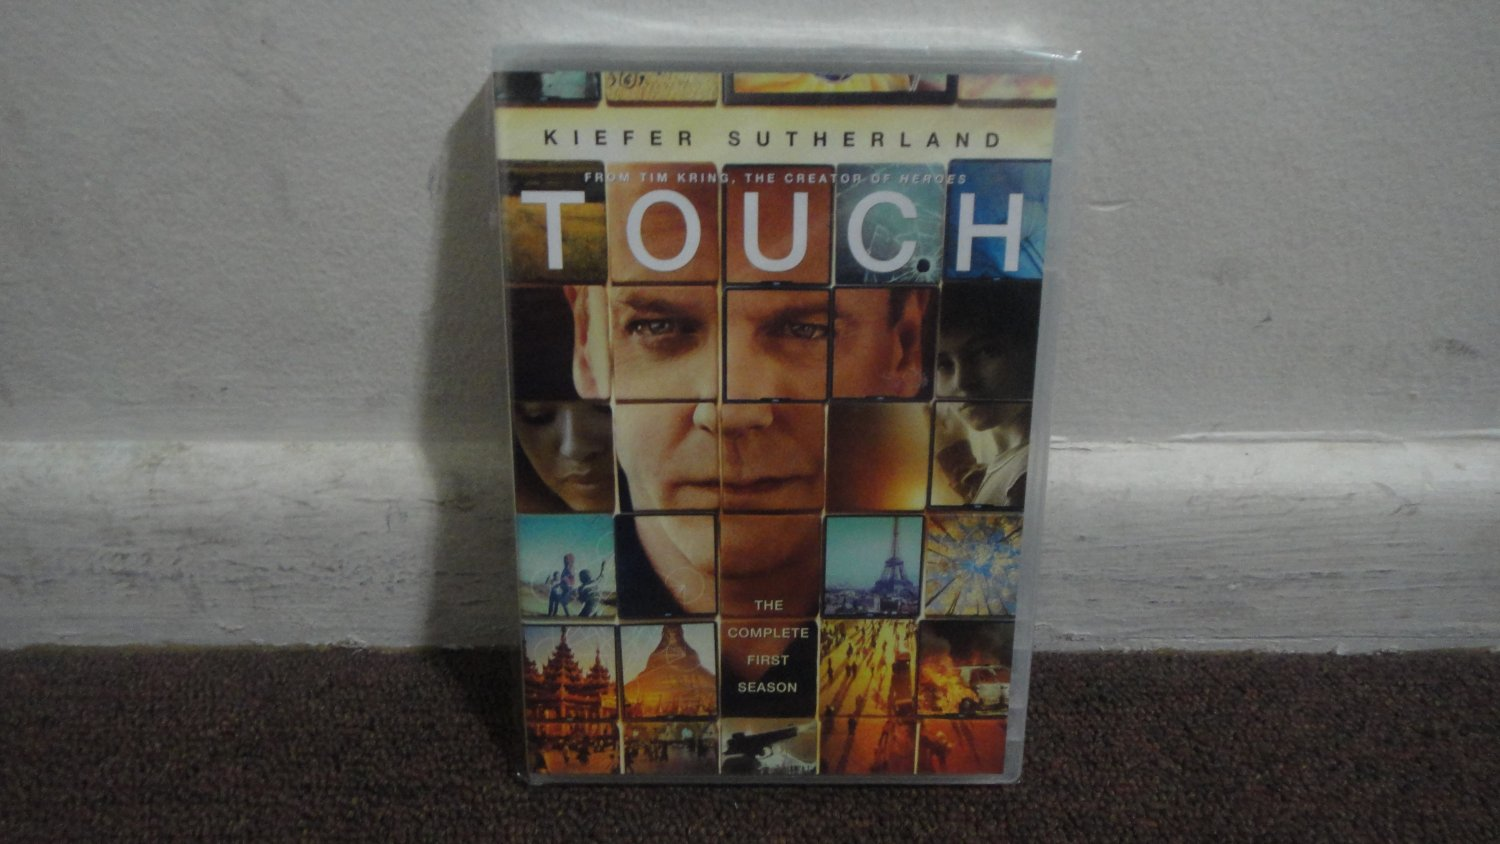 TOUCH - DVD: The Complete First Season, Season 1,  KIEFER SUTHERLAND, Brand New, Sealed. LOOK!!!